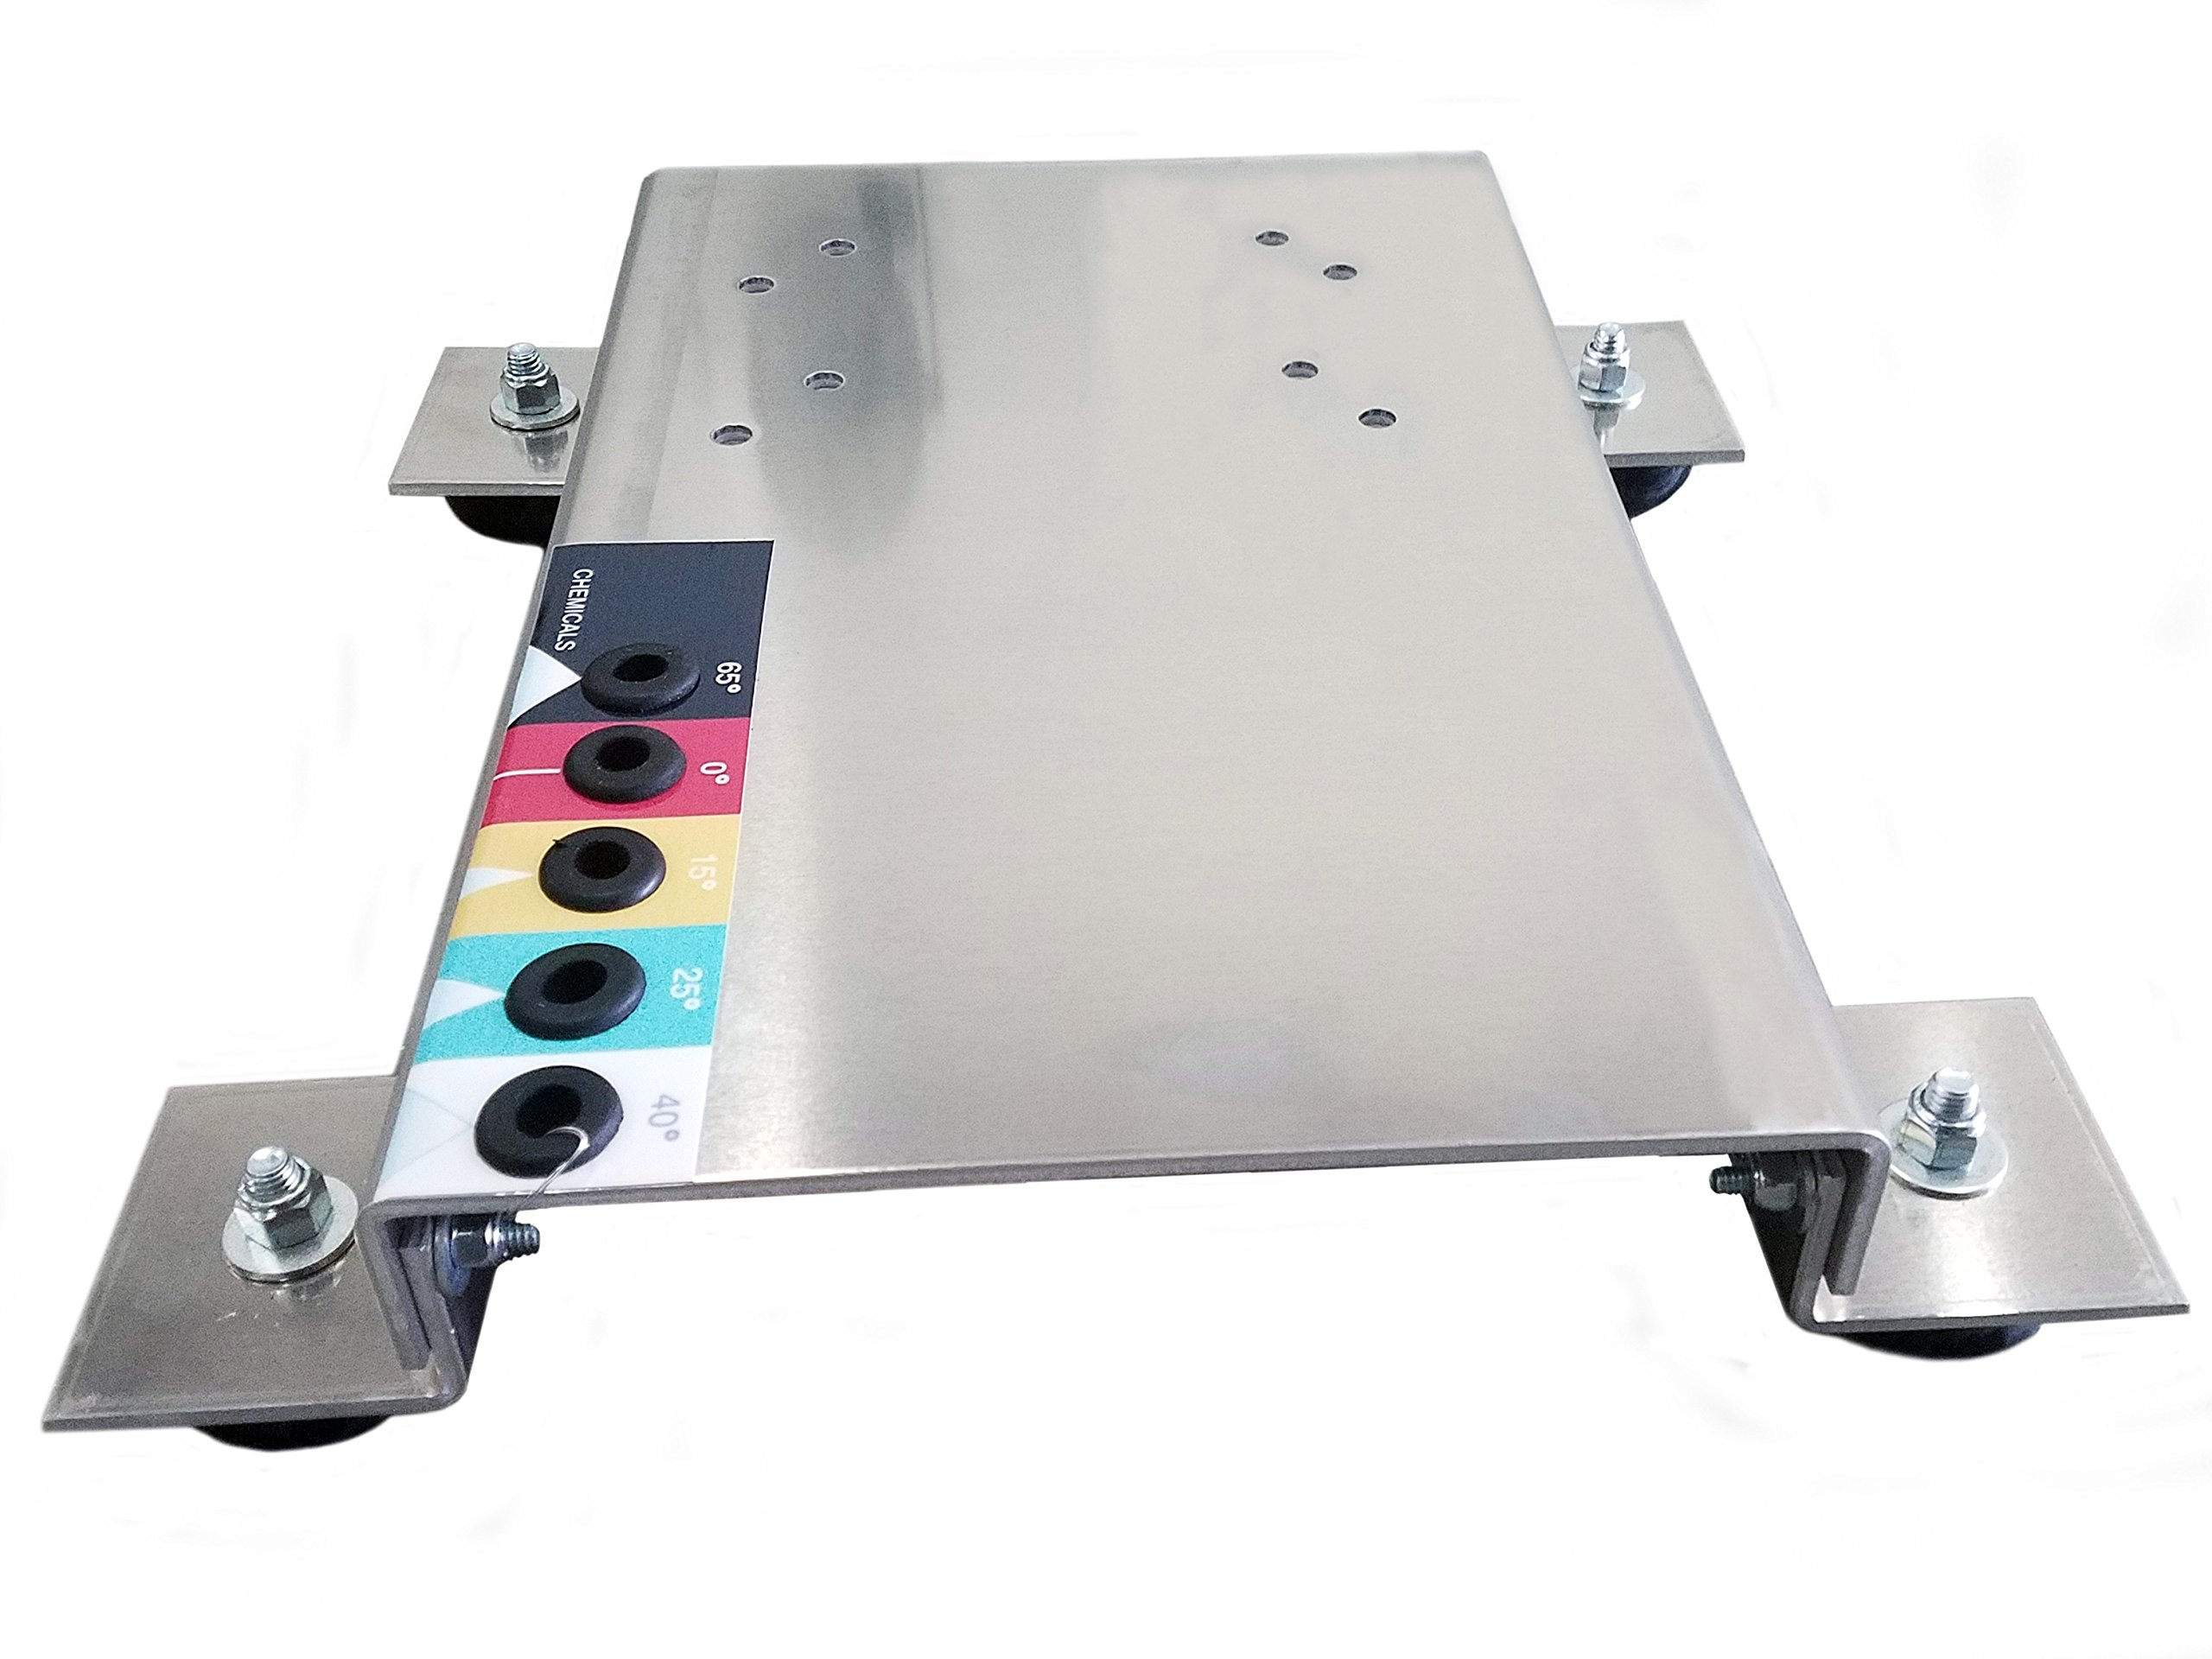 Pressure Washer Skid Plate Frame, Aluminum with Rubber Feet